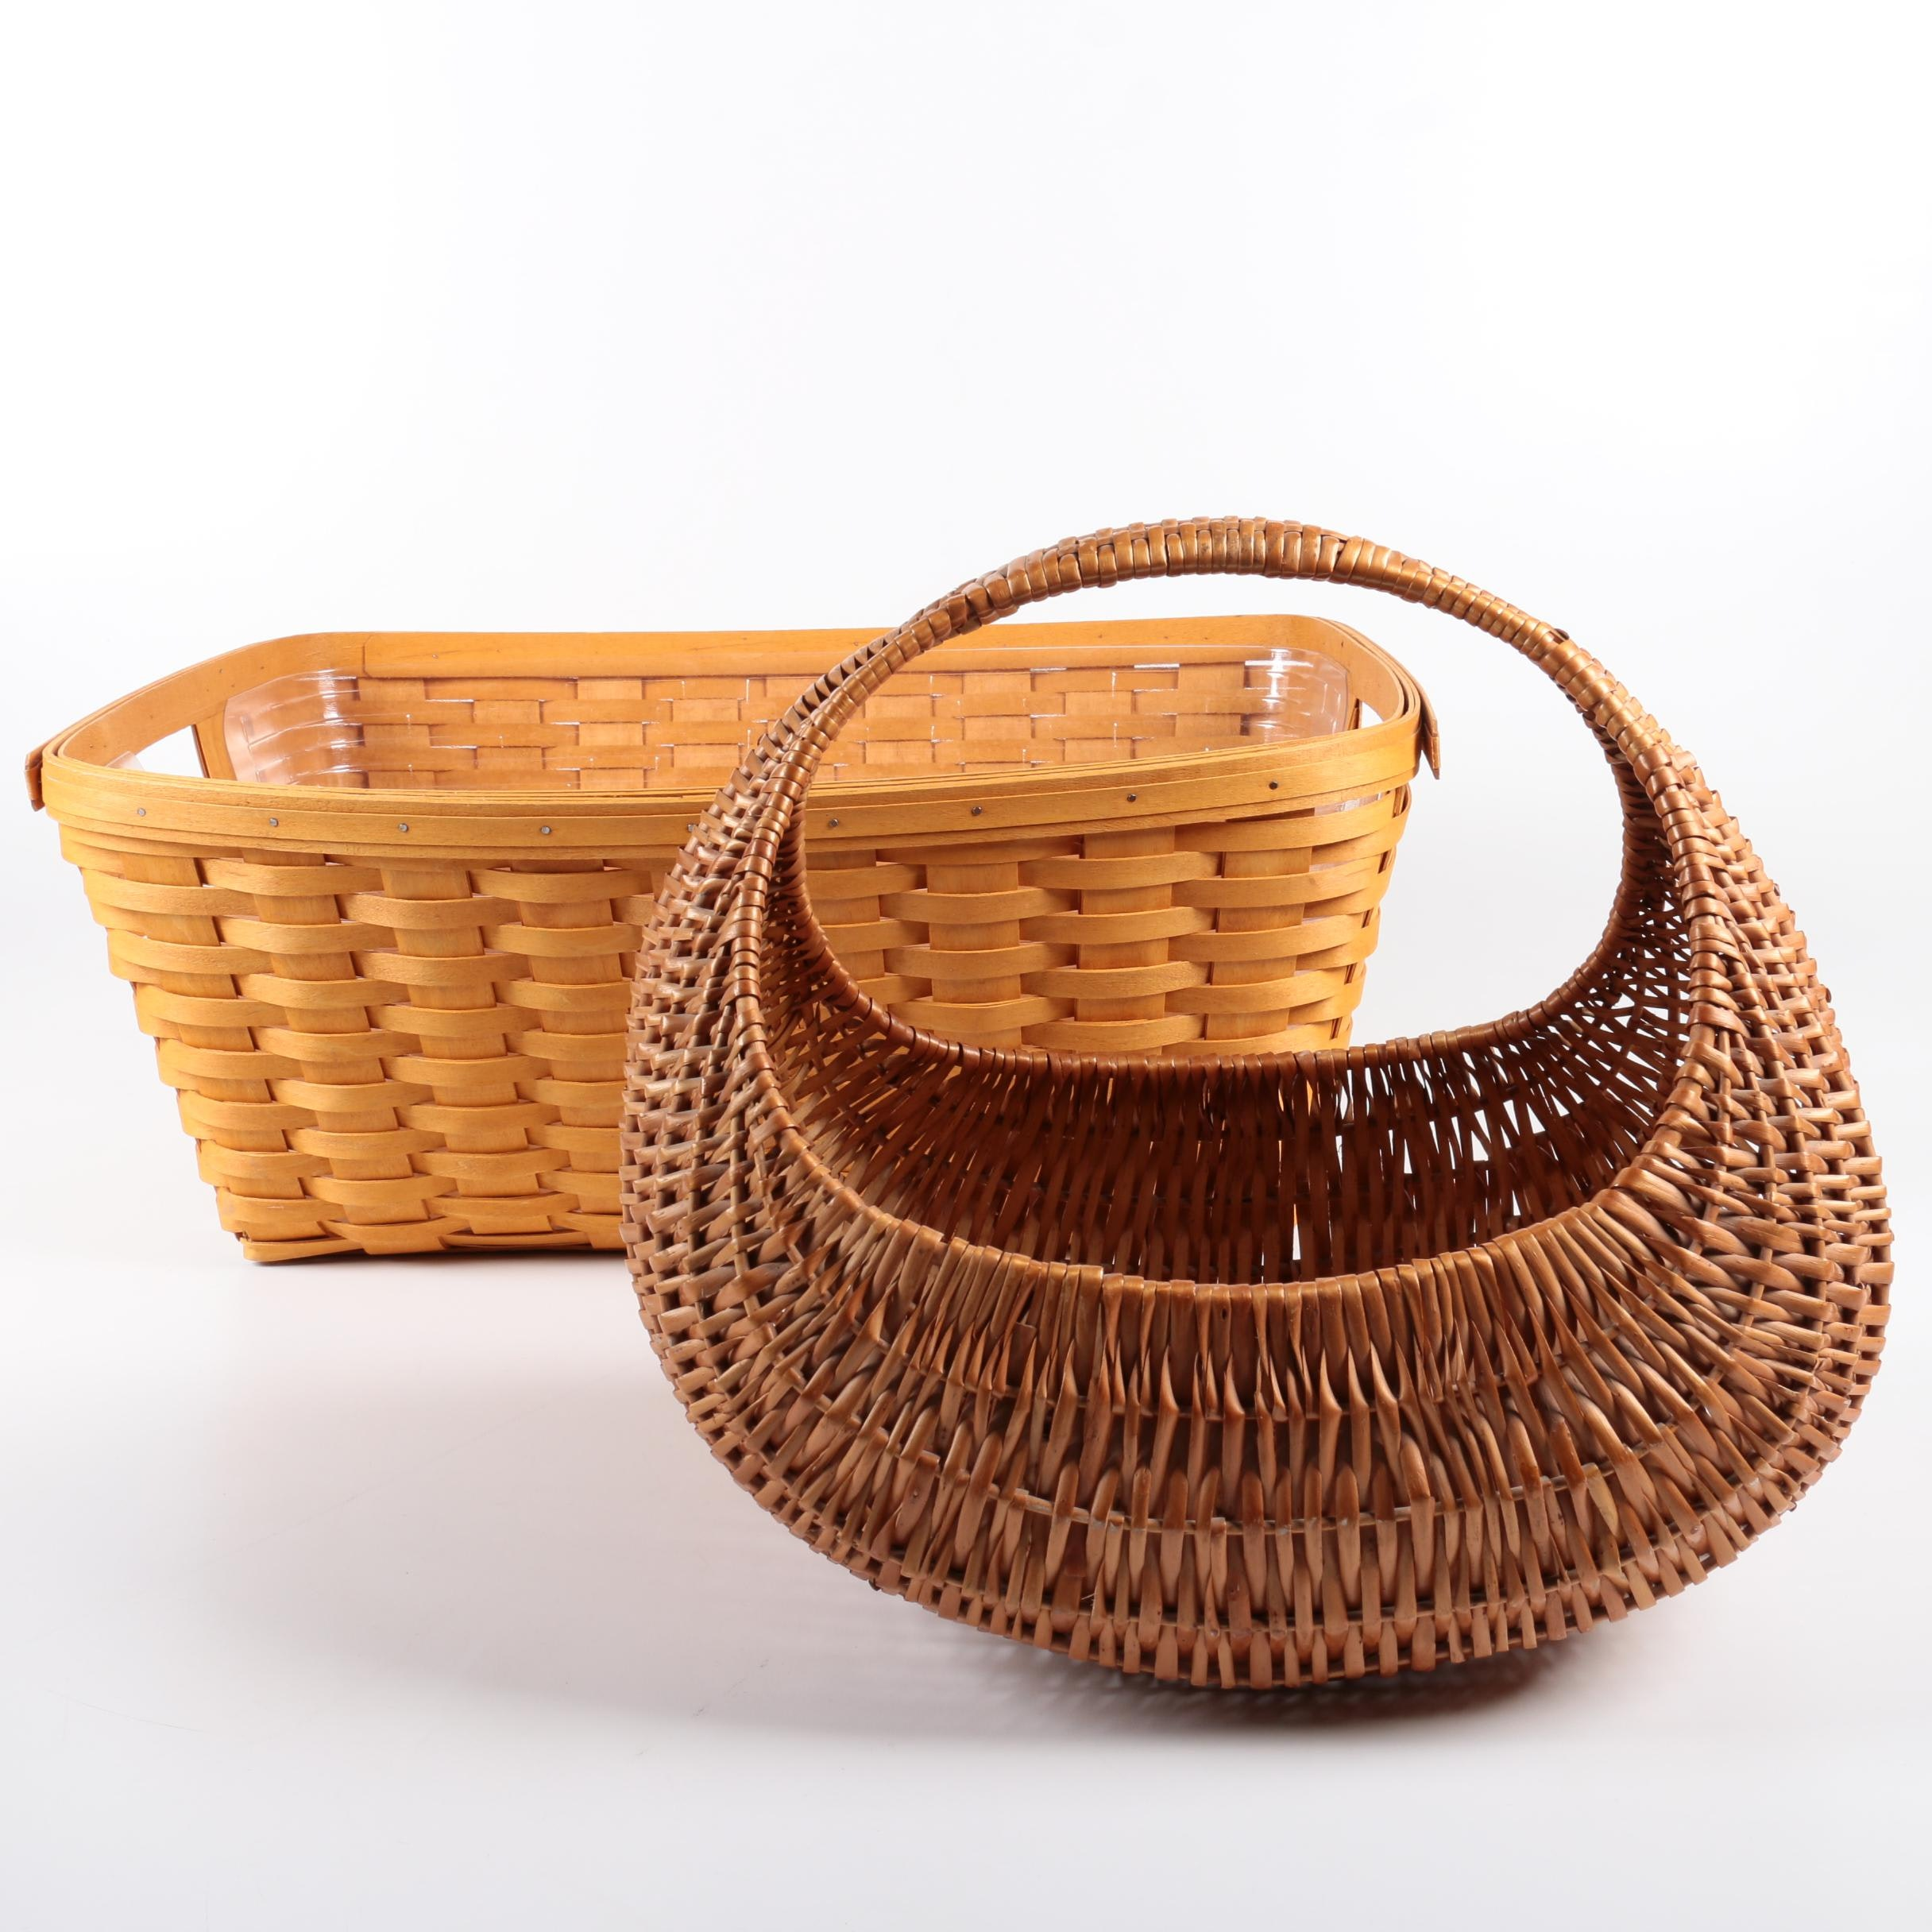 Woven Wicker and Wood Baskets Featuring Longaberger